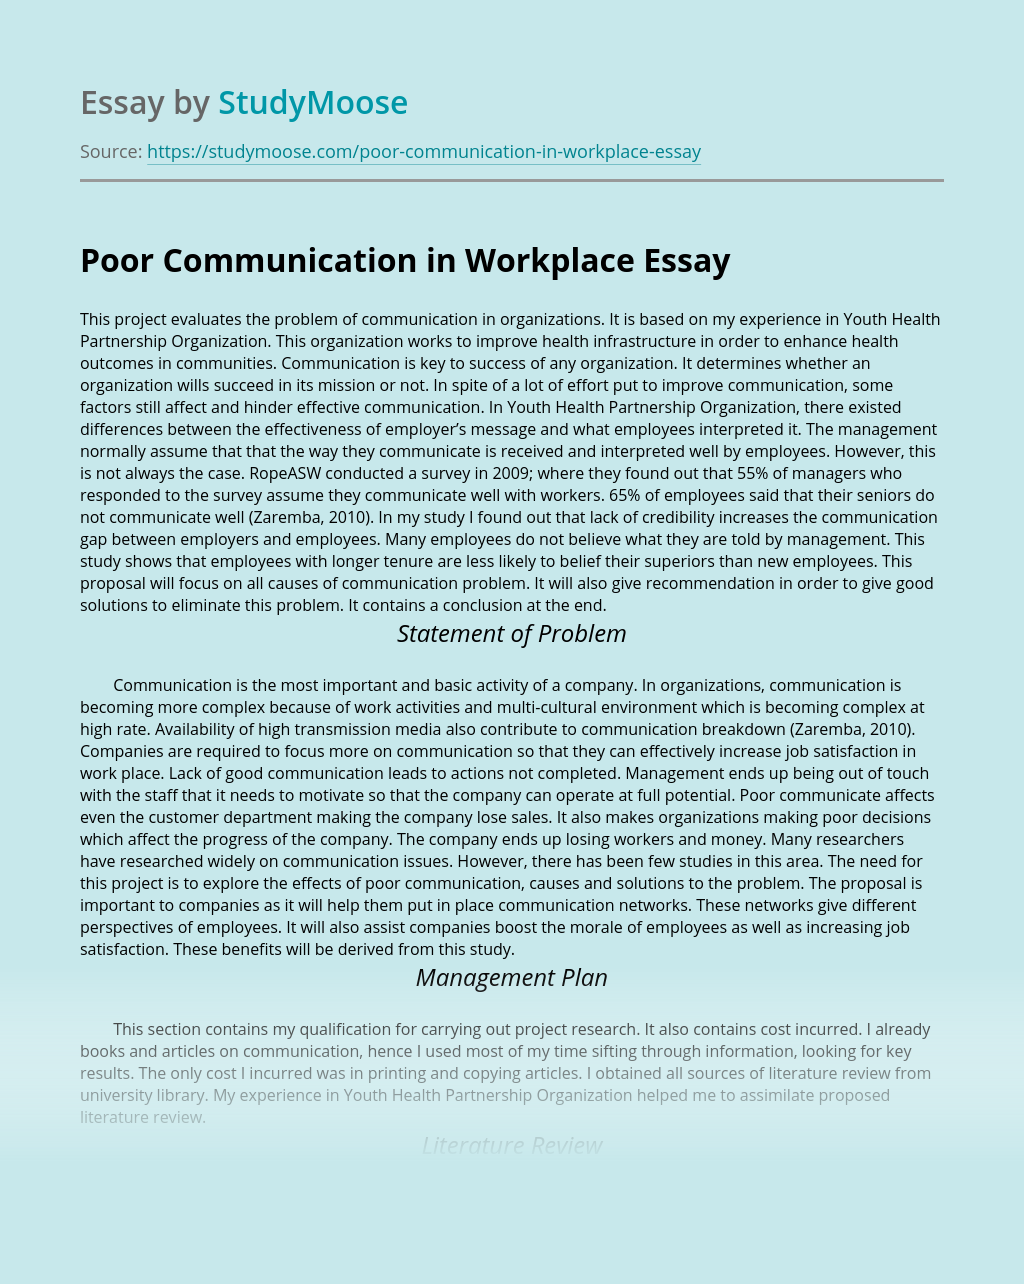 Poor Communication in Workplace